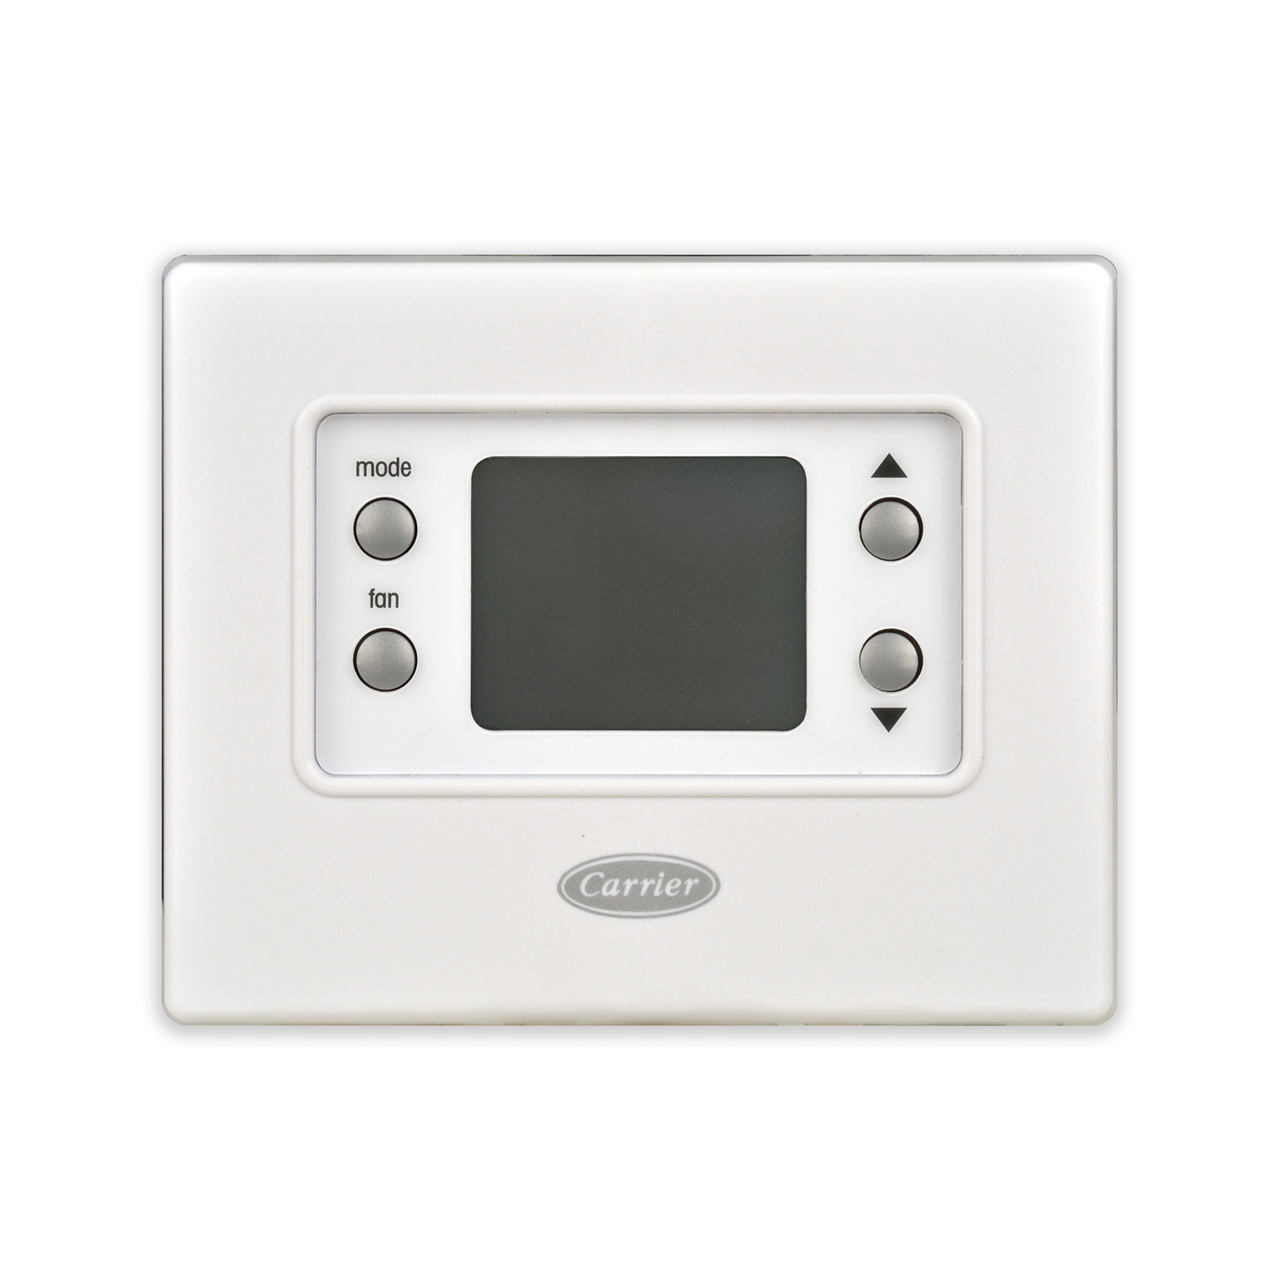 carrier-33CSCNACHP-FC-commercial-non-programmable-fan-coil-thermostat